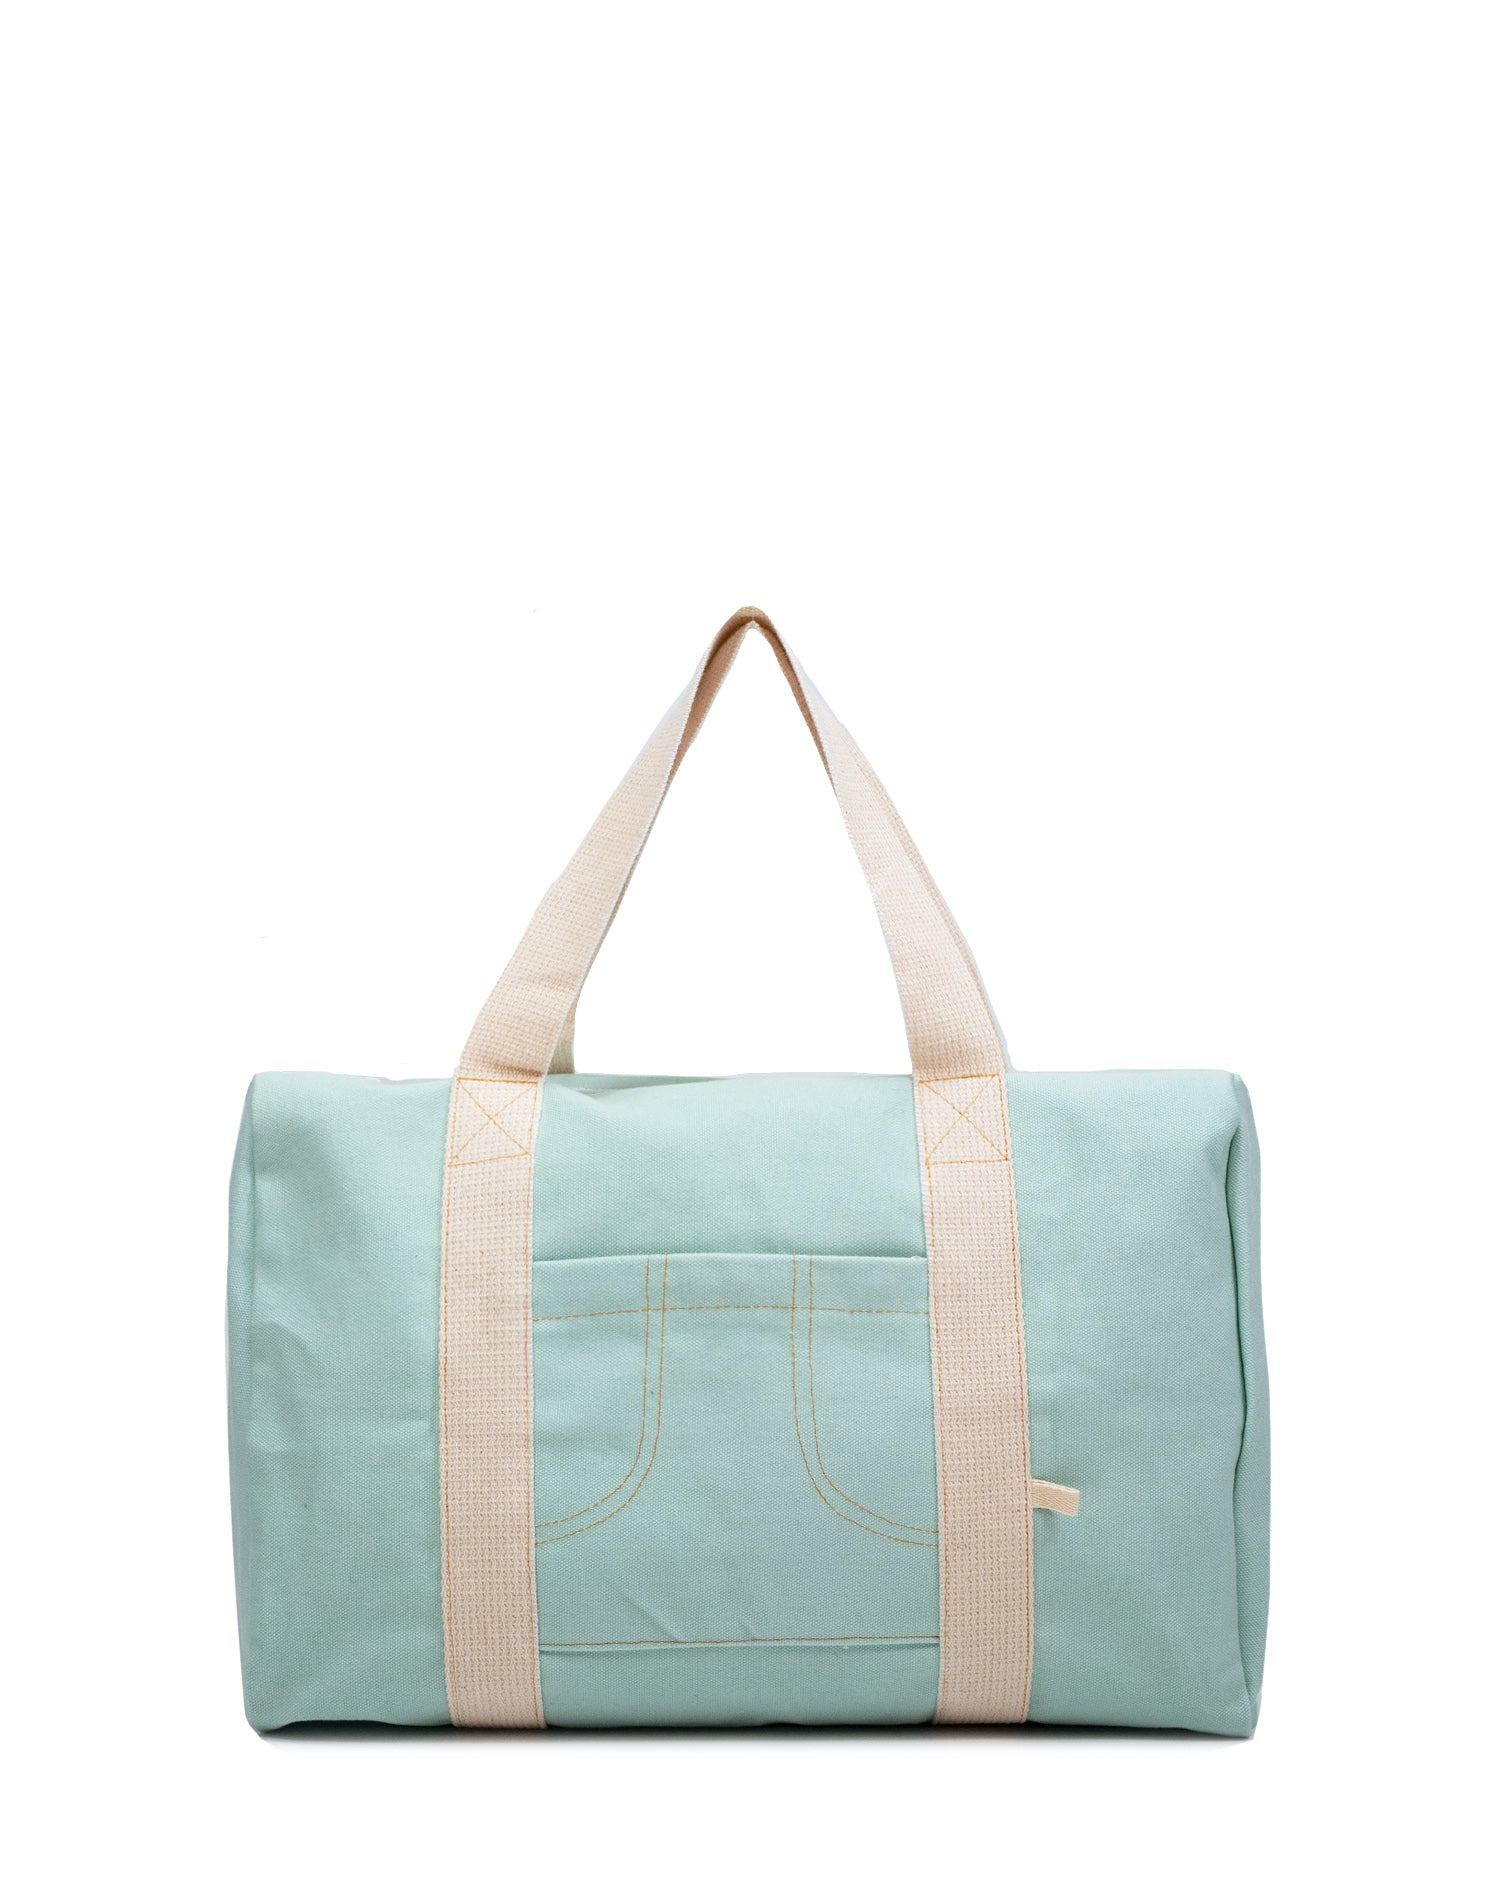 Mint Green Canvas Street Duffel Bag.薄荷綠帆布行李袋